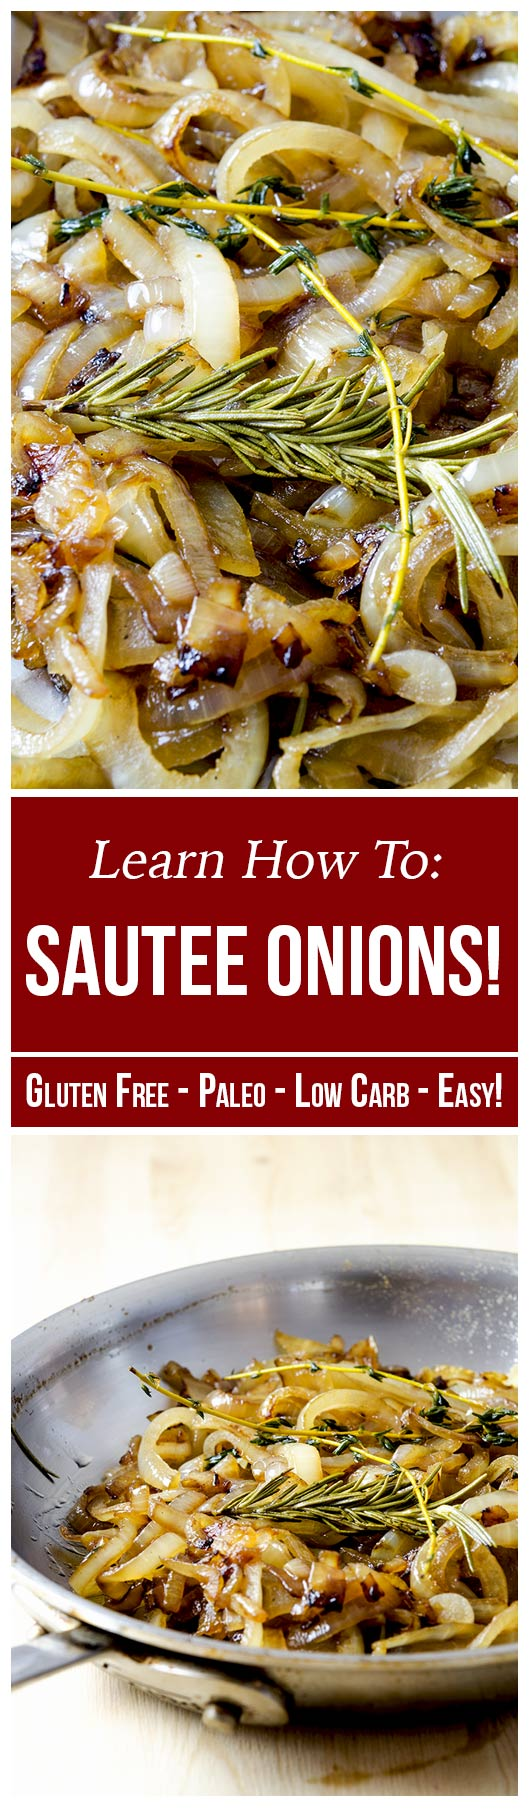 Learn how to saute onions easily and quickly with this wonderfully flavorful recipe.